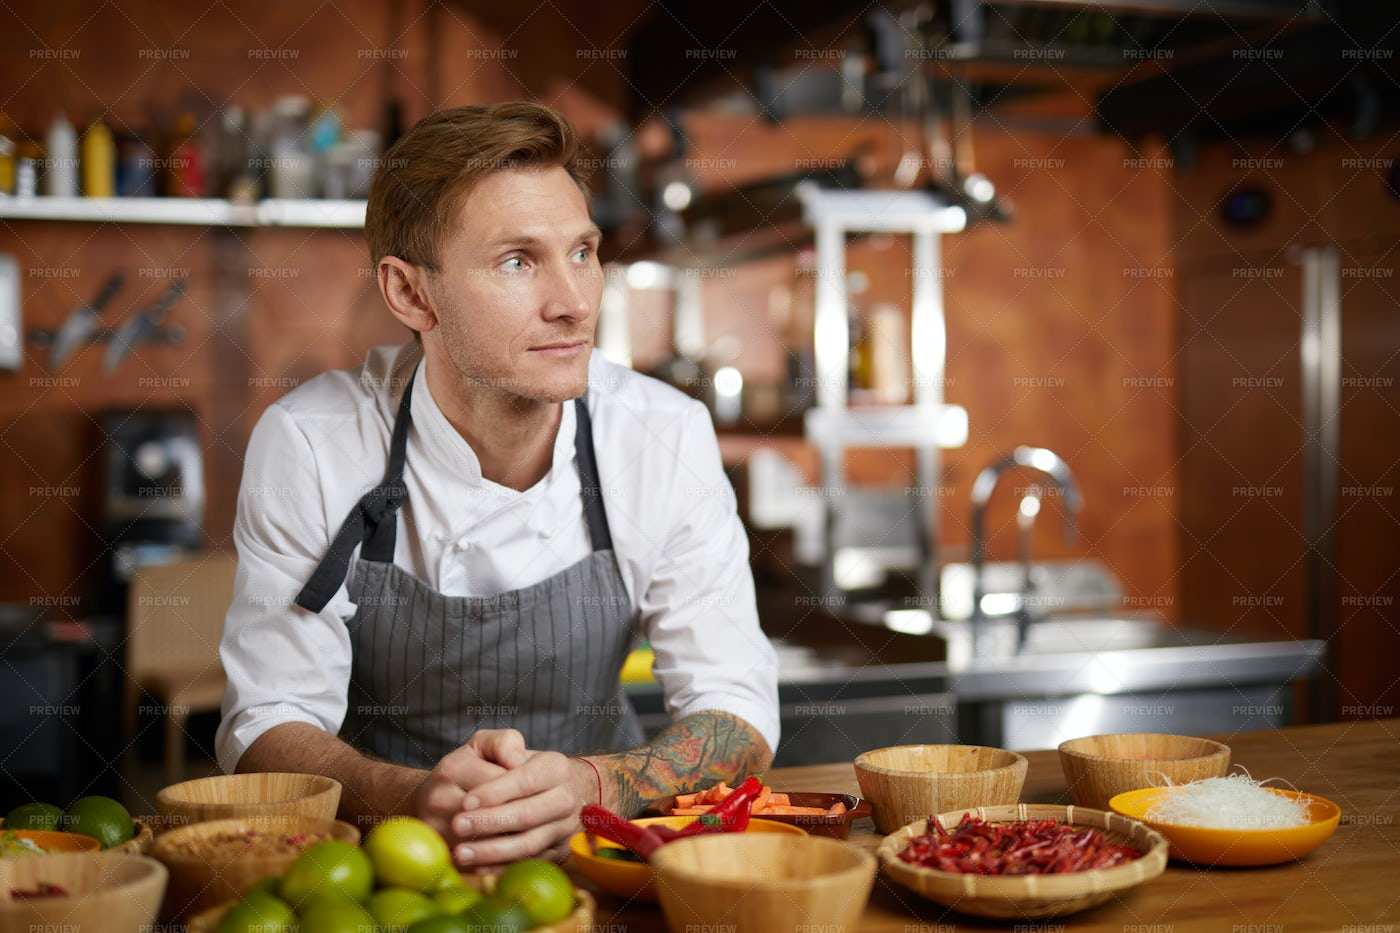 Tattooed Chef Posing In Kitchen: Stock Photos